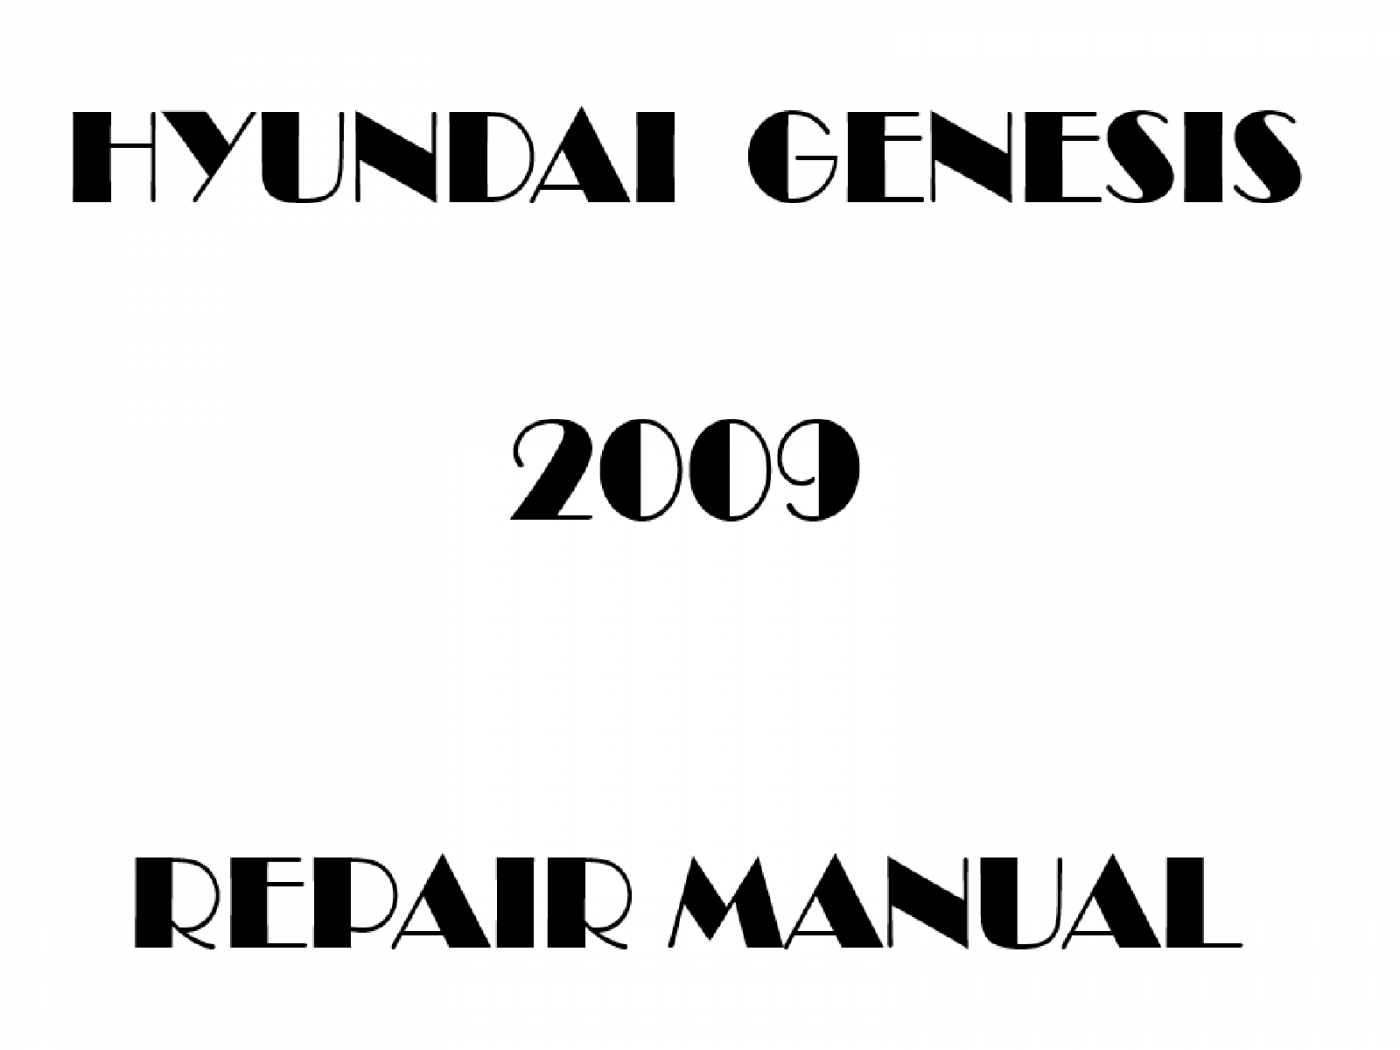 2009 Hyundai Genesis repair manual